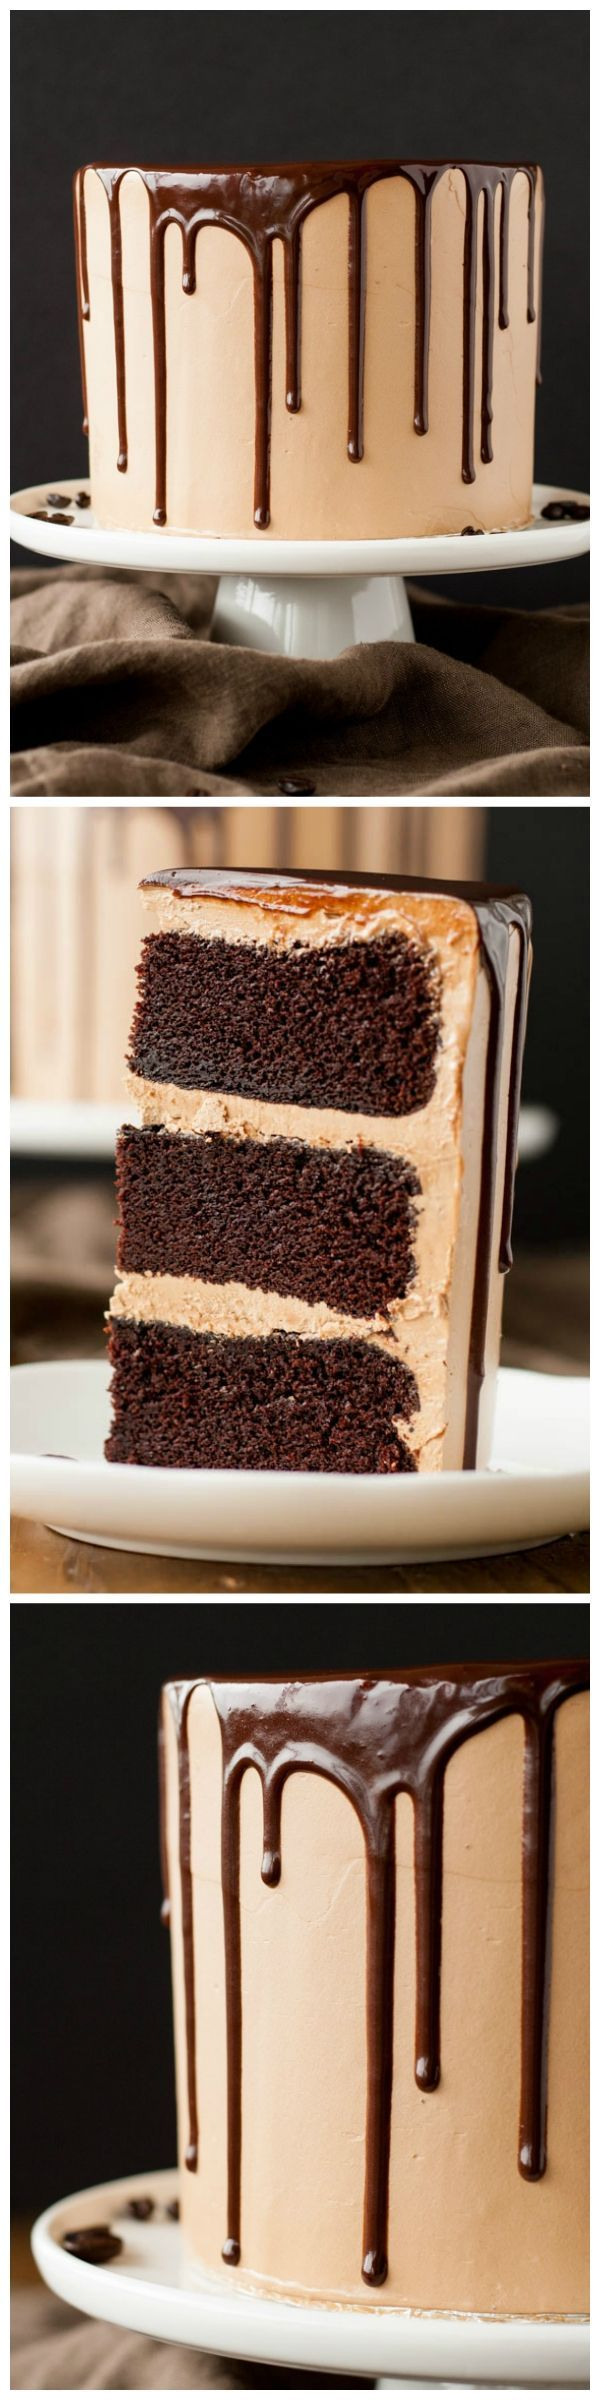 A rich dark chocolate cake, covered in a silky mocha swiss meringue buttercream, drizzled with a dreamy chocolate ganache.